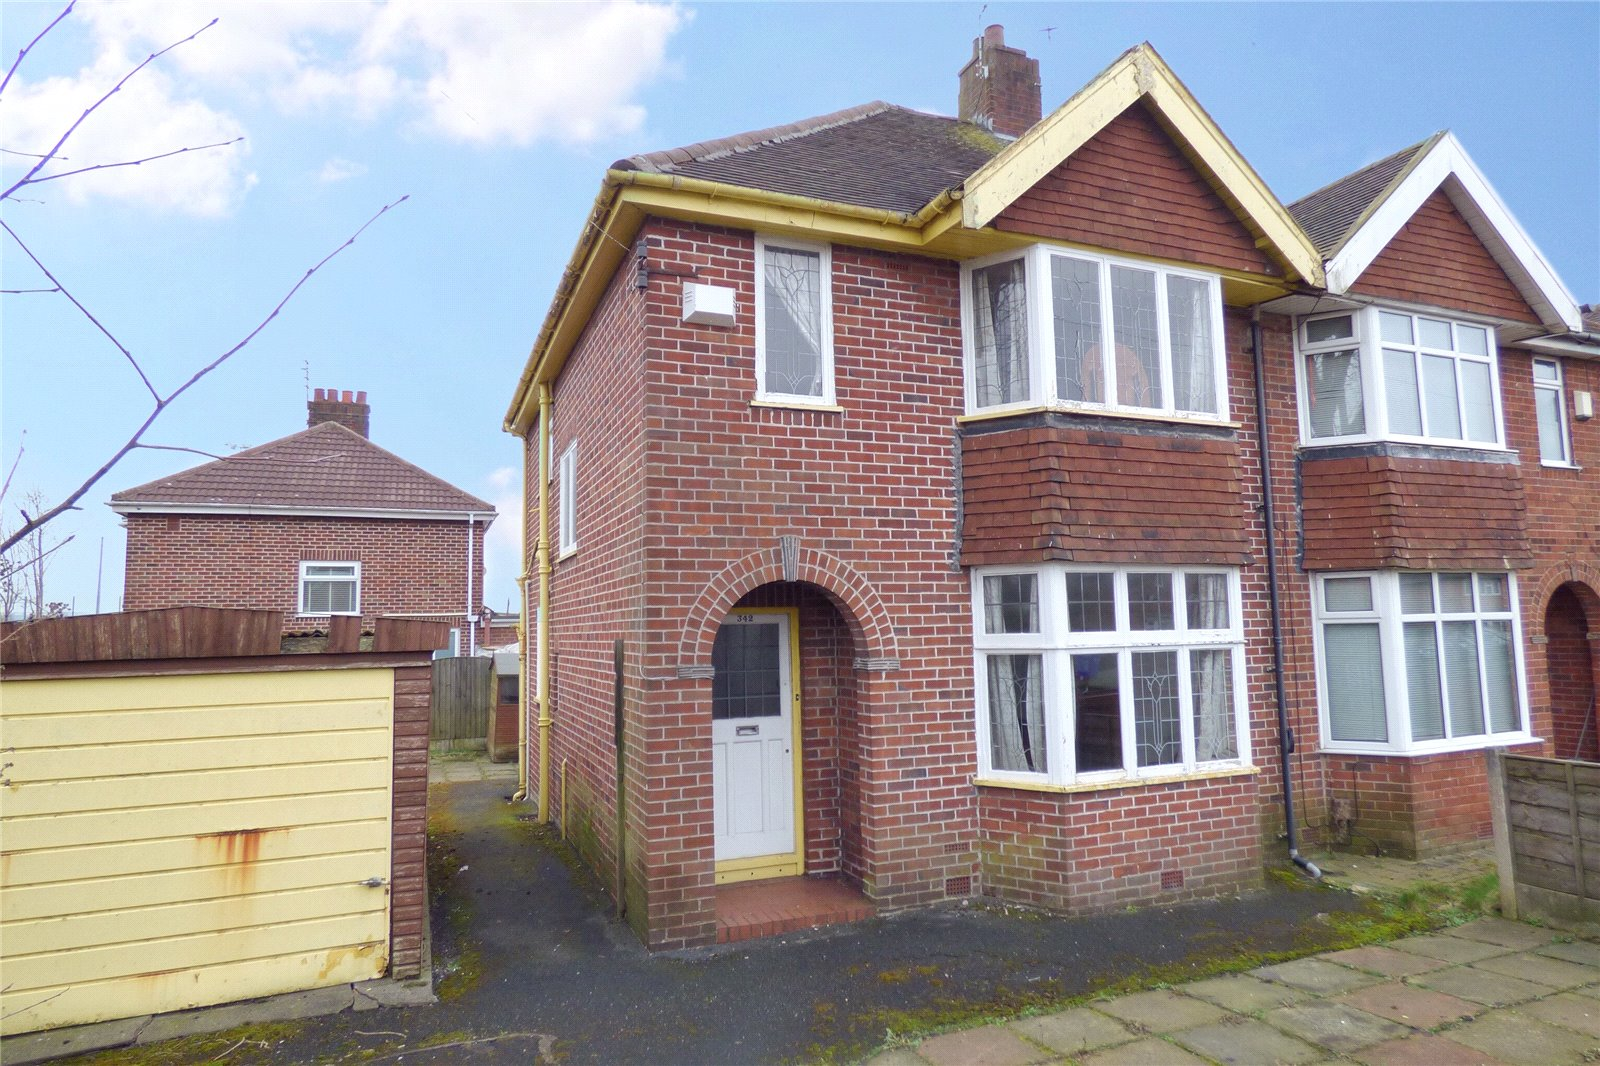 3 Bedrooms Semi Detached House for sale in Lightbowne Road, Moston, Manchester, M40